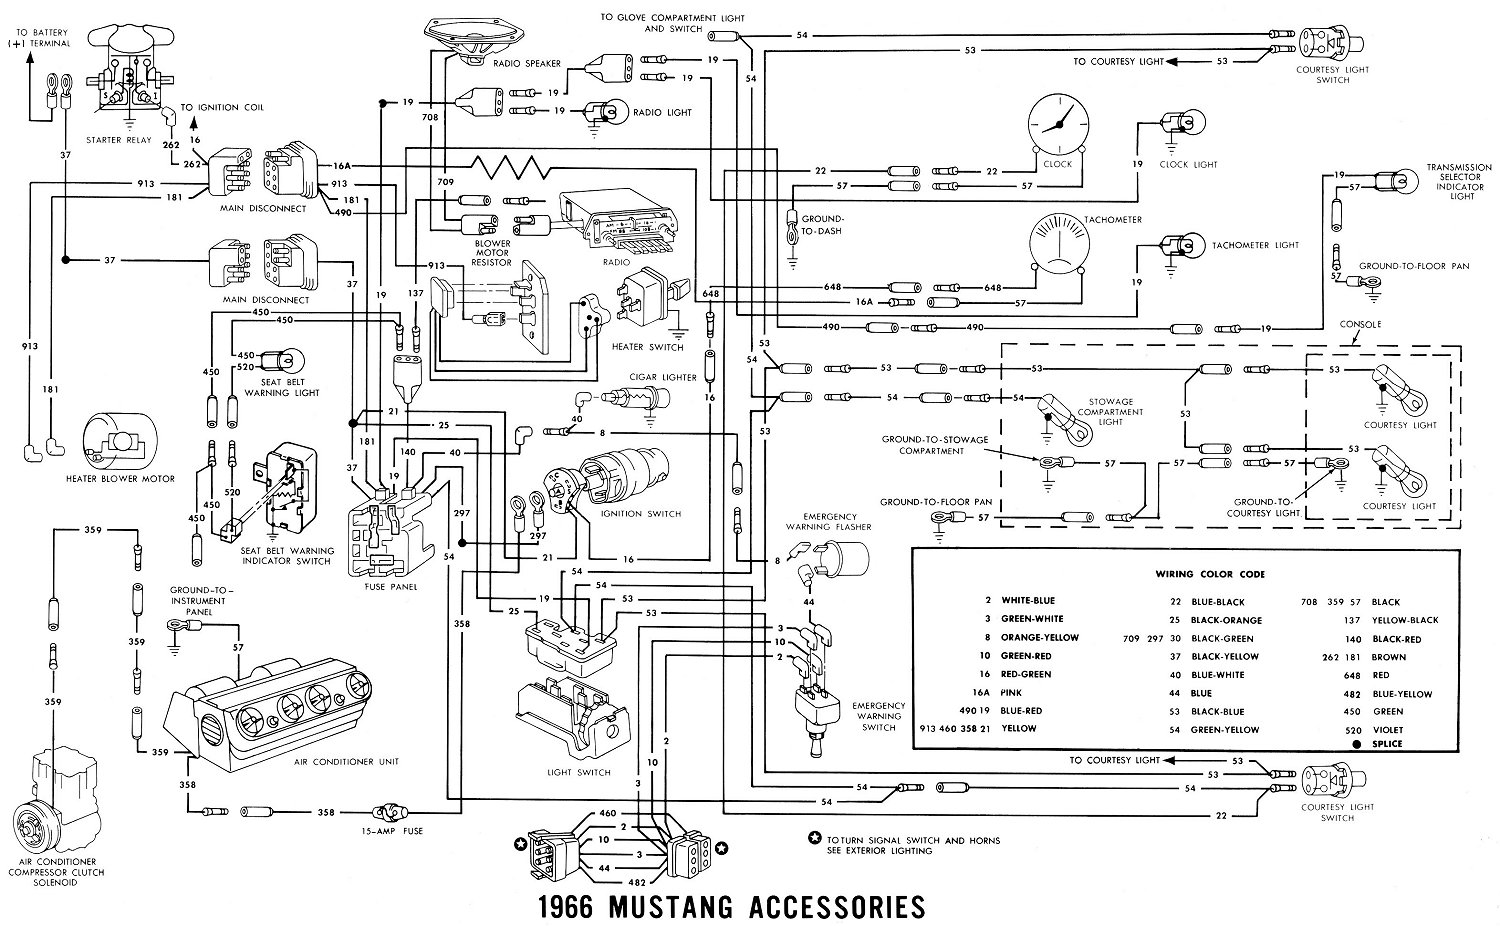 66acces1 1966 mustang wiring diagrams average joe restoration 66 mustang engine wiring diagram free at bayanpartner.co